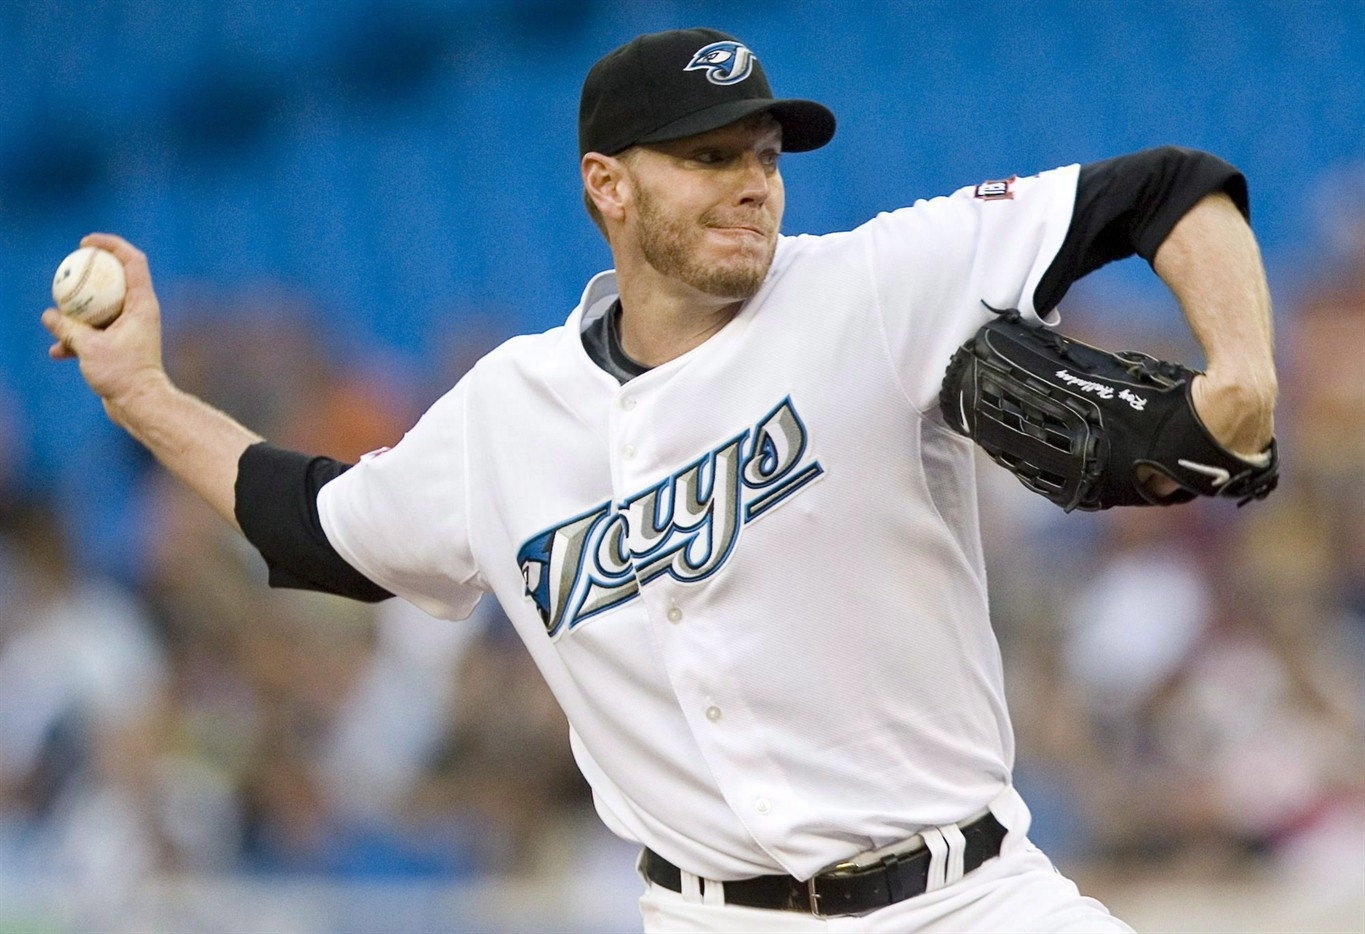 Morphine Found in Roy Halladay's System Before Fatal Plane Crash